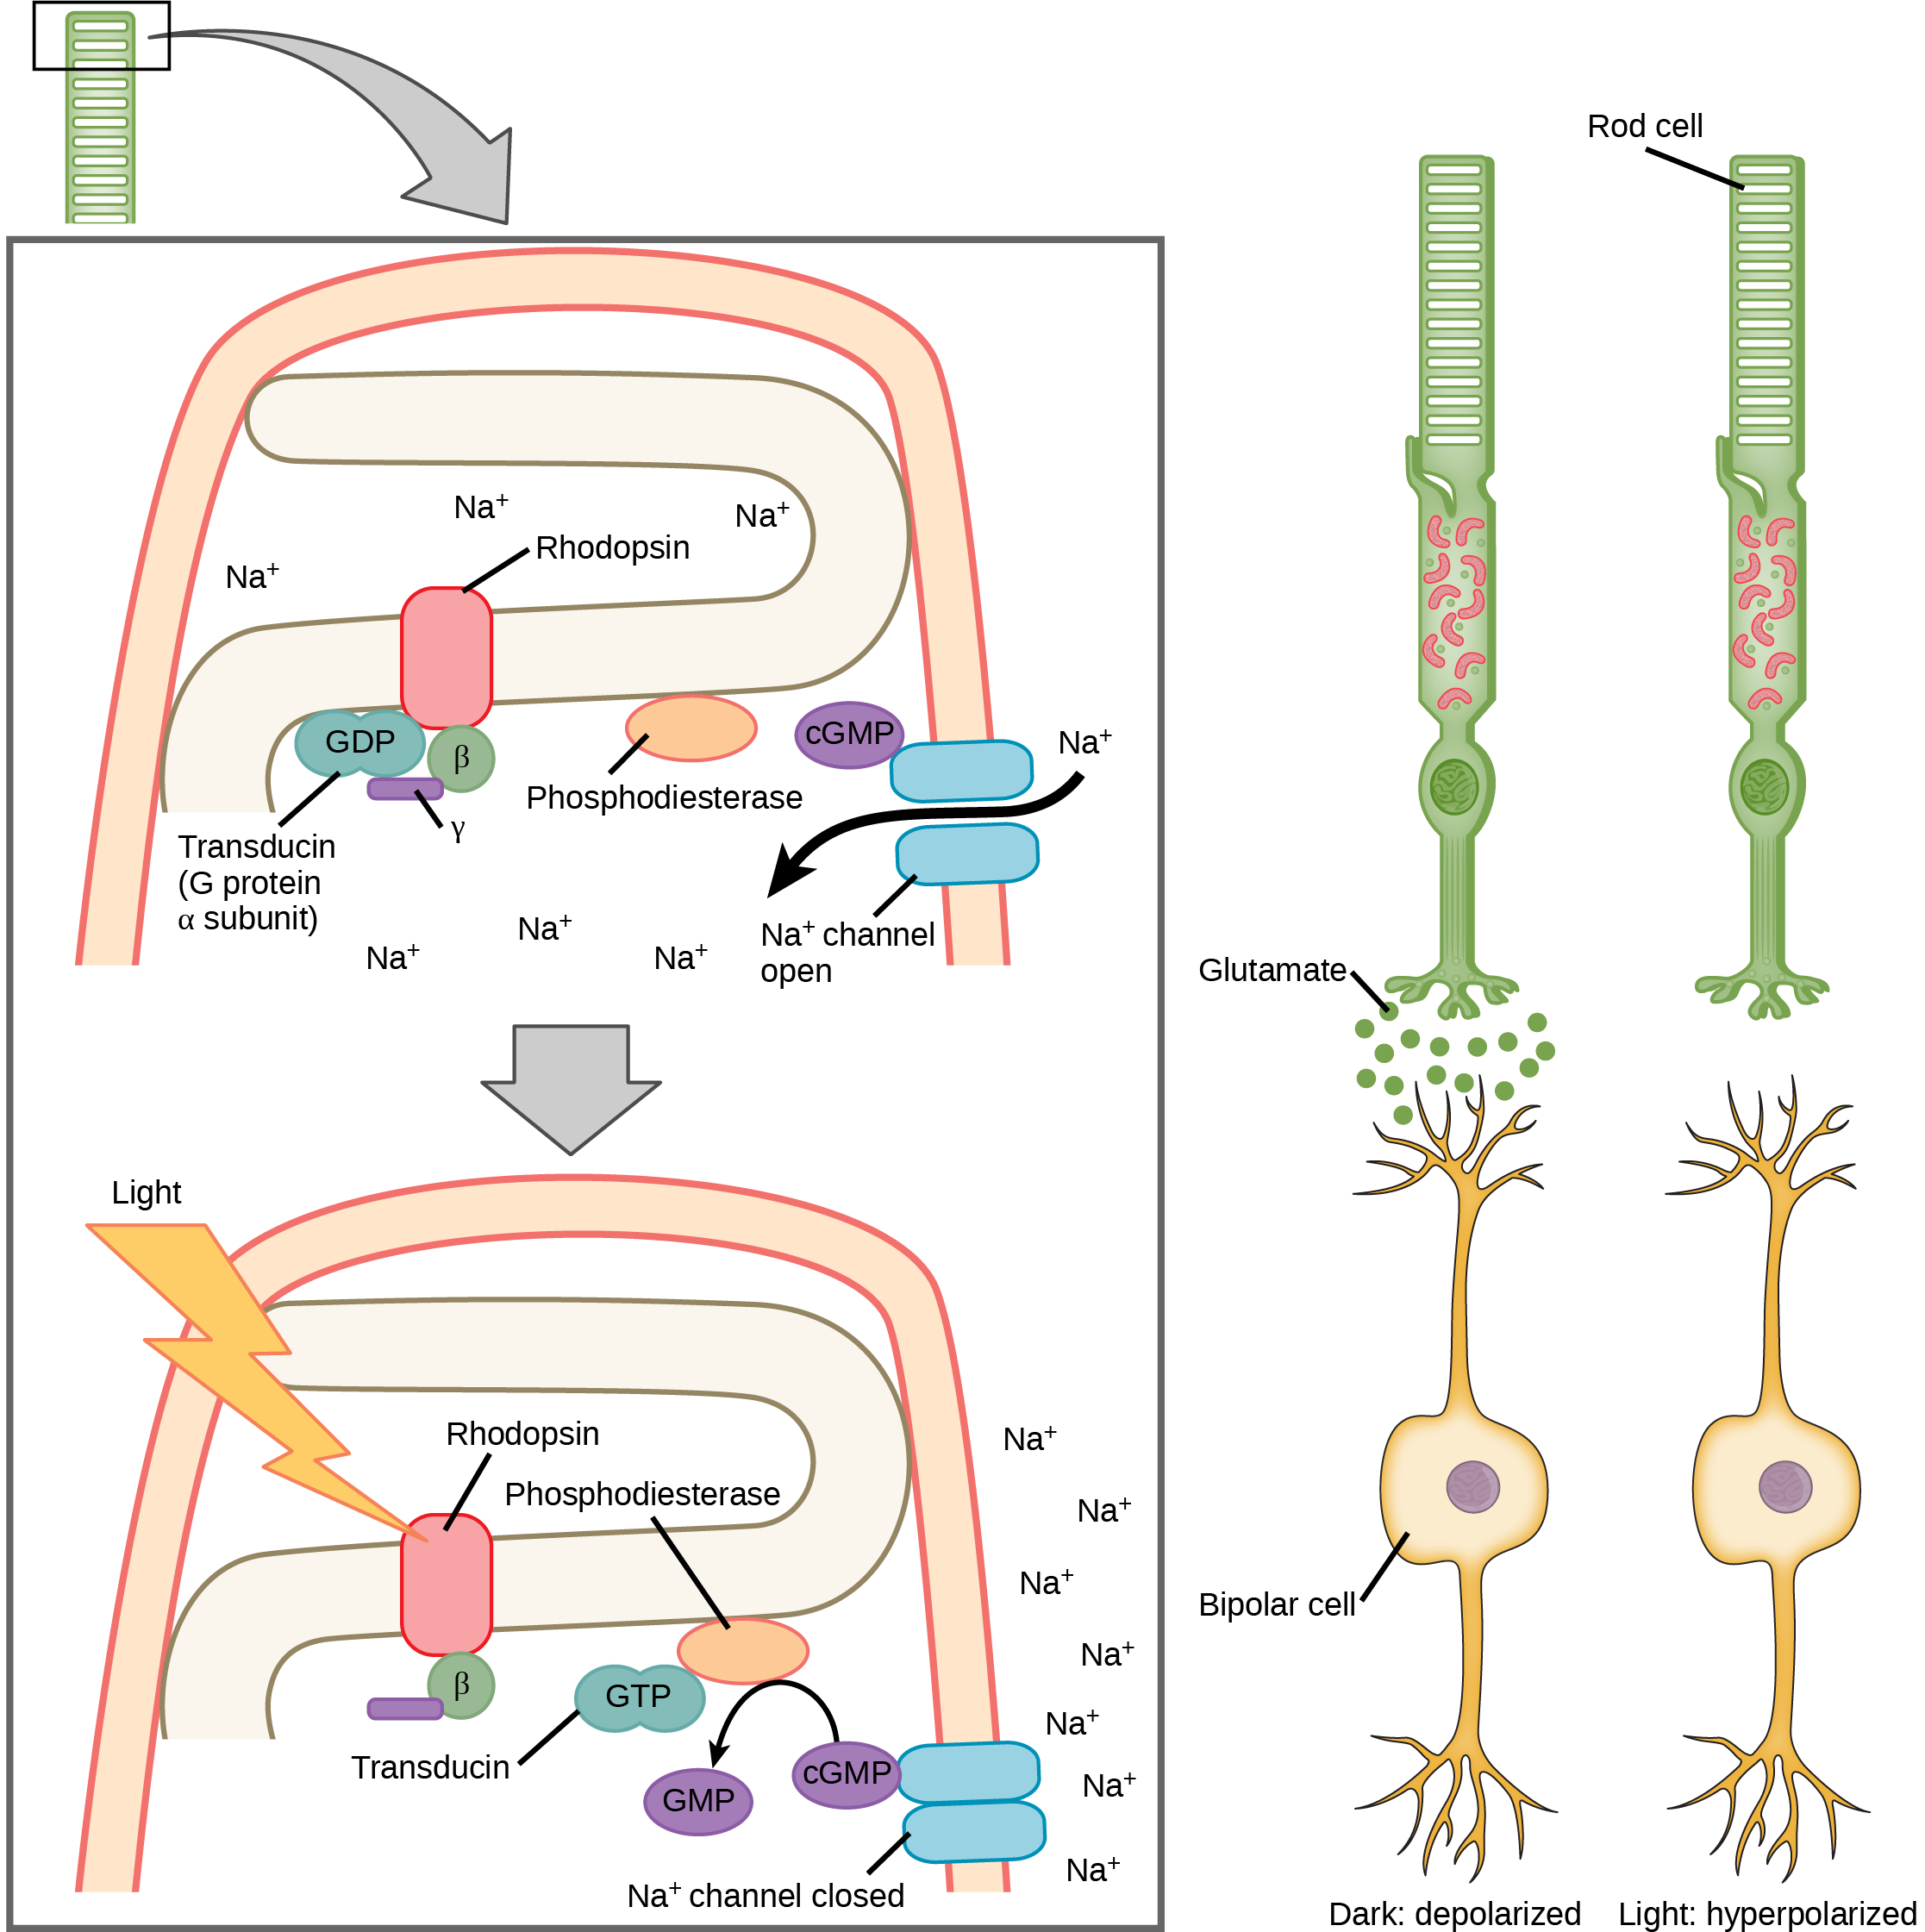 Illustration A shows the signal transduction pathway for rhodopsin, which is located in internal membranes at the top of rod cells. When light strikes rhodopsin, a G protein called transducing is activated. Transducin has three subunits, alpha, beta and gamma. Upon activation, G D P on the alpha subunit is replaced with G T P. The subunit dissociates, and binds phosphodiesterase. Phosphodiesterase, in turn, converts c G M P to G M P, which closes sodium ion channels. As a result, sodium can no longer enter the cell, and the membrane becomes hyperpolarized. Illustration b shows that the tall, thin rod cell is stacked on top of a bipolar nerve cell. In the dark the membrane is depolarized, and glutamate is released from the rod cell to the axon terminal of the bipolar cell. In the light, no glutamate is released.